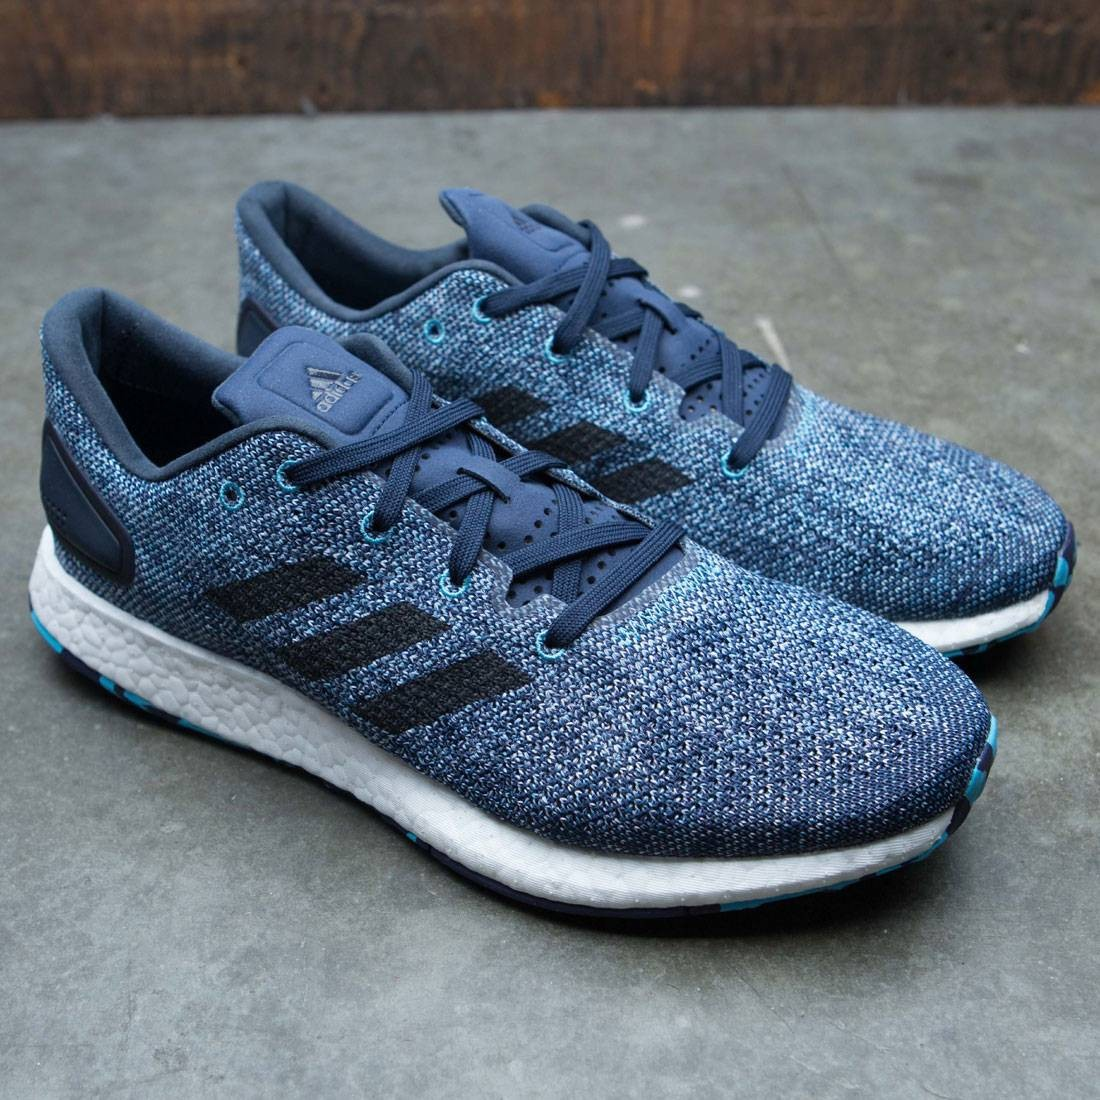 adidas pureboost dpr ltd running shoes